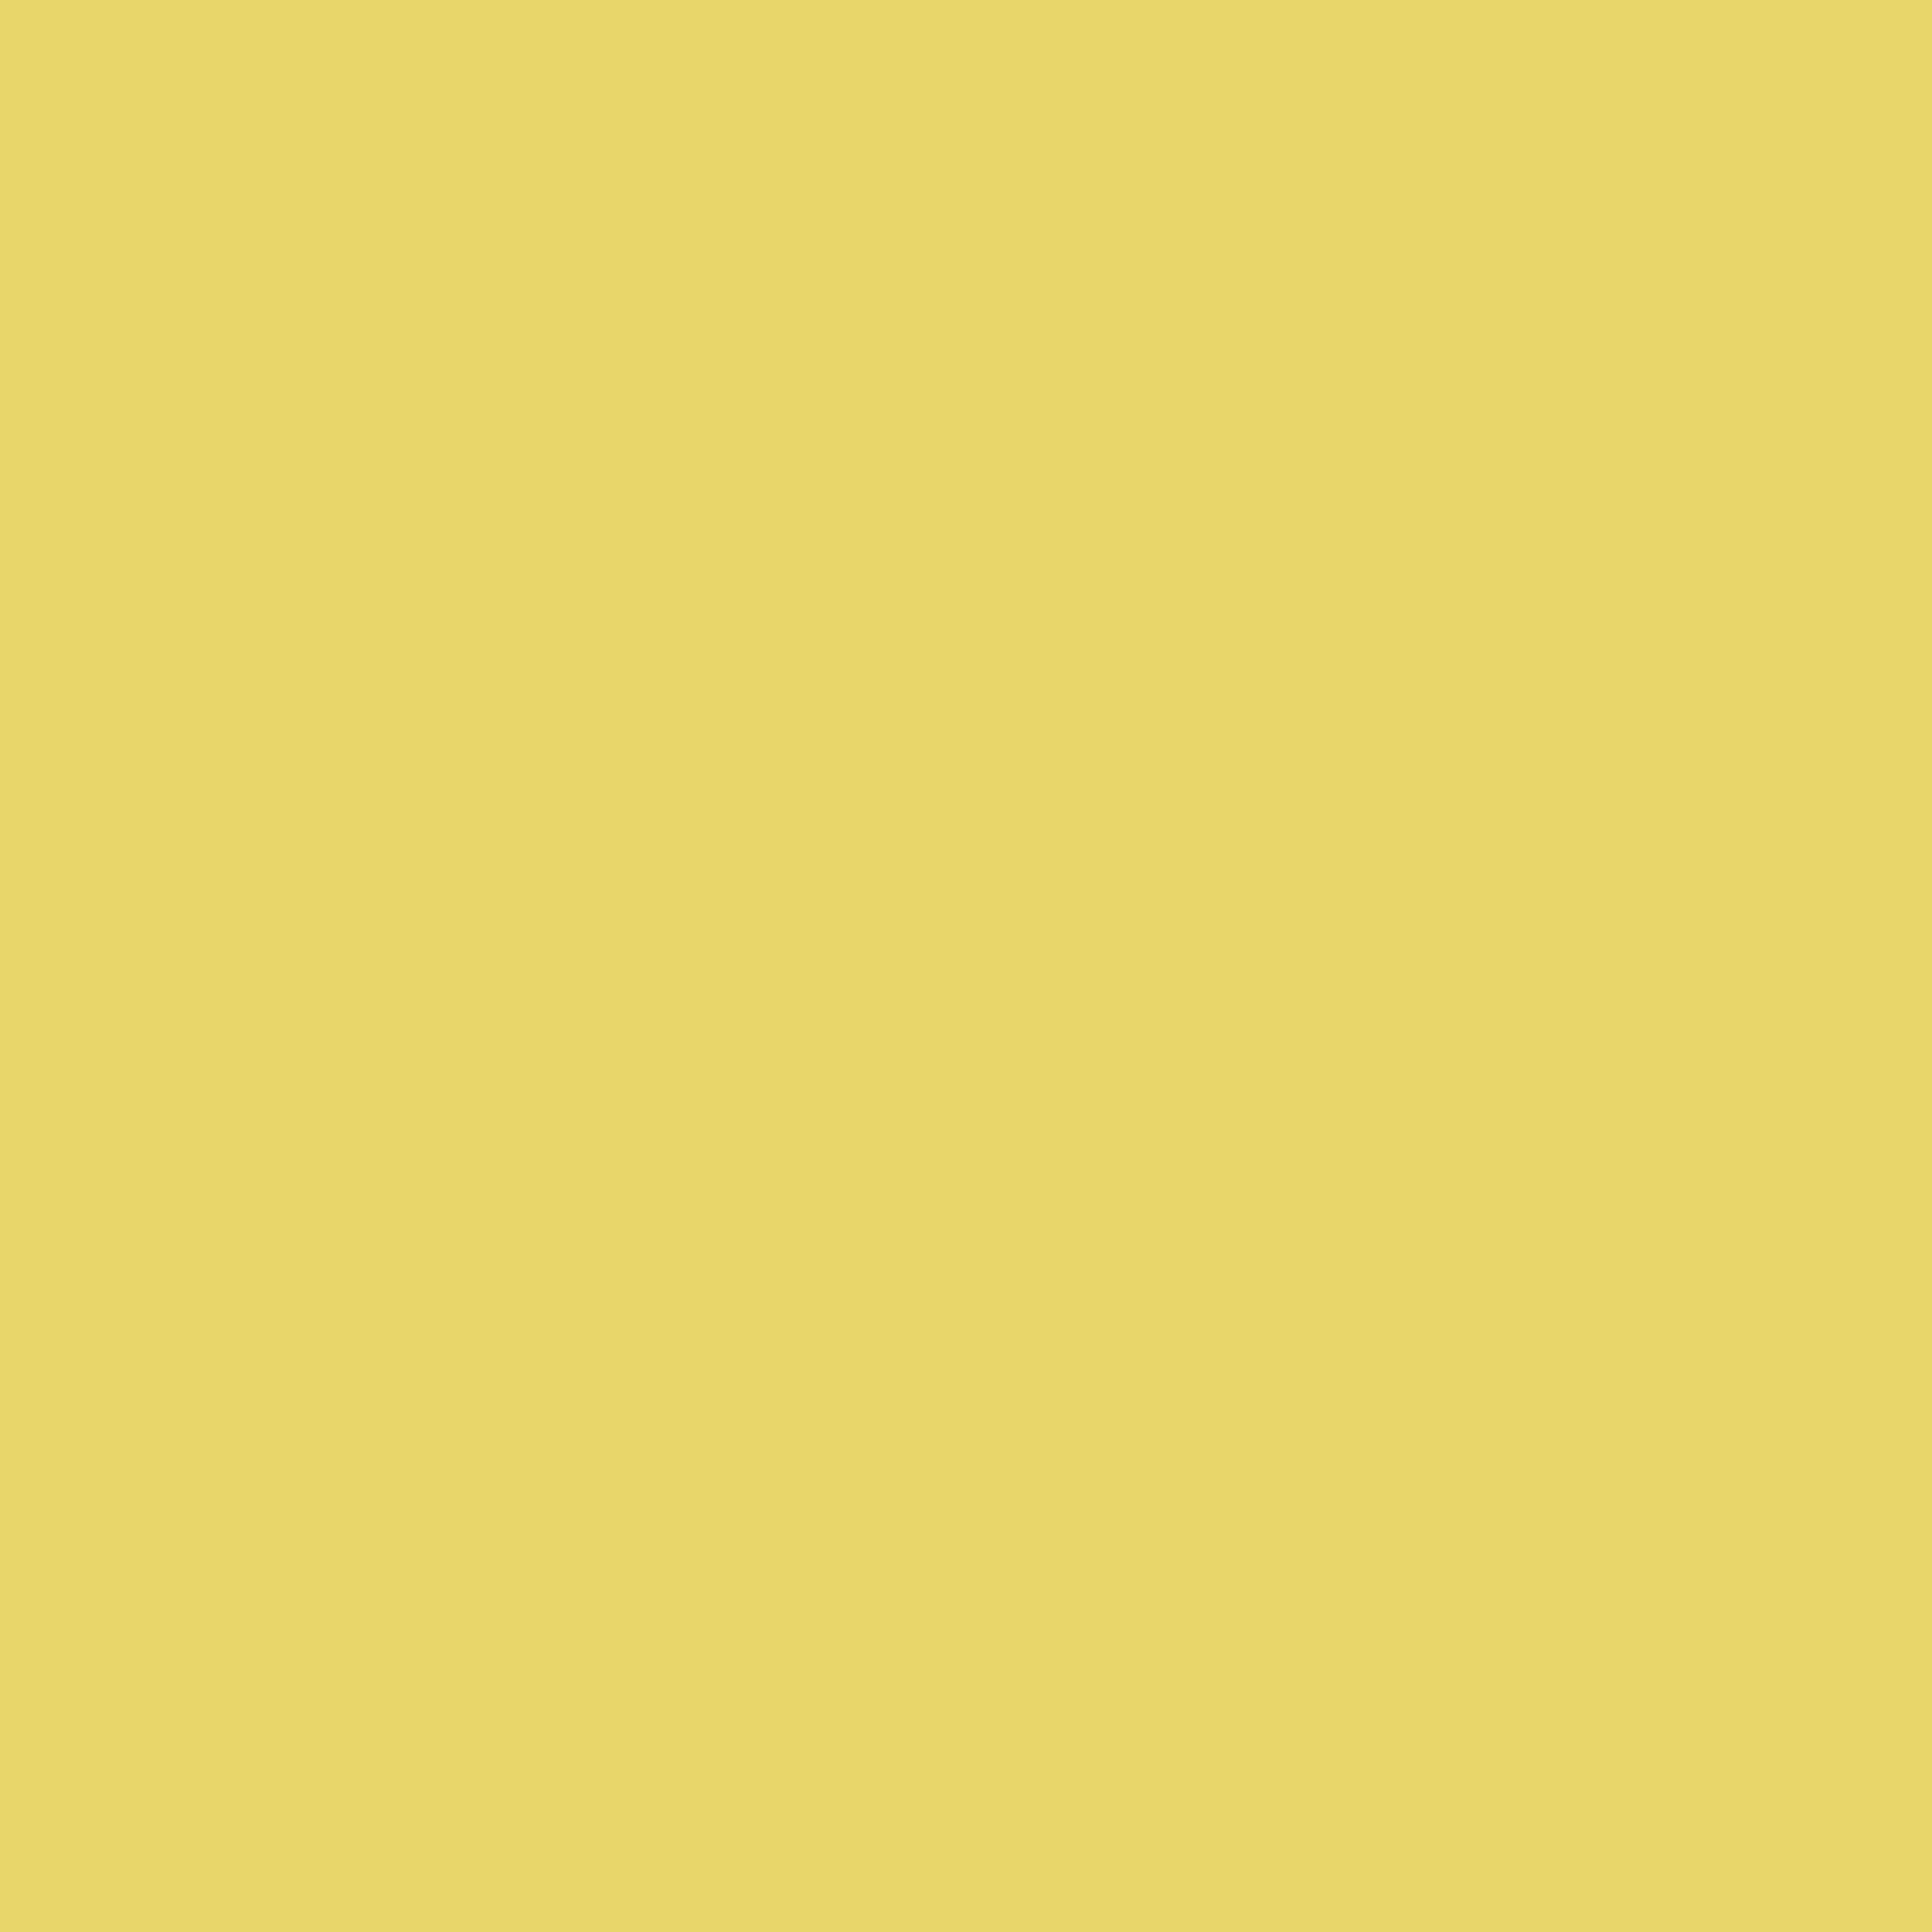 2732x2732 Hansa Yellow Solid Color Background